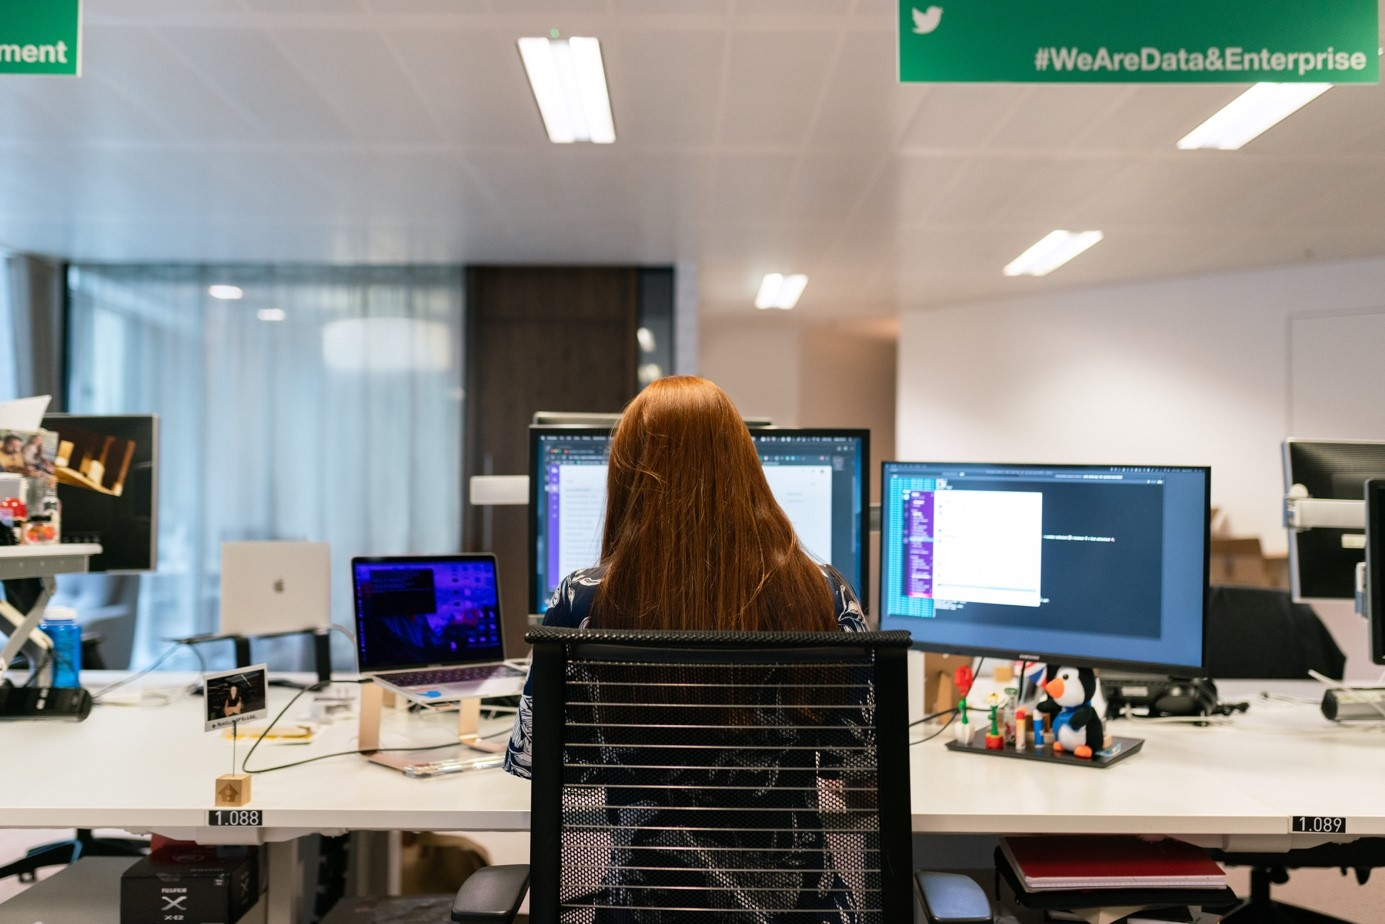 Contact Centre Outsourcing: The Smart Way to Improve Service Levels